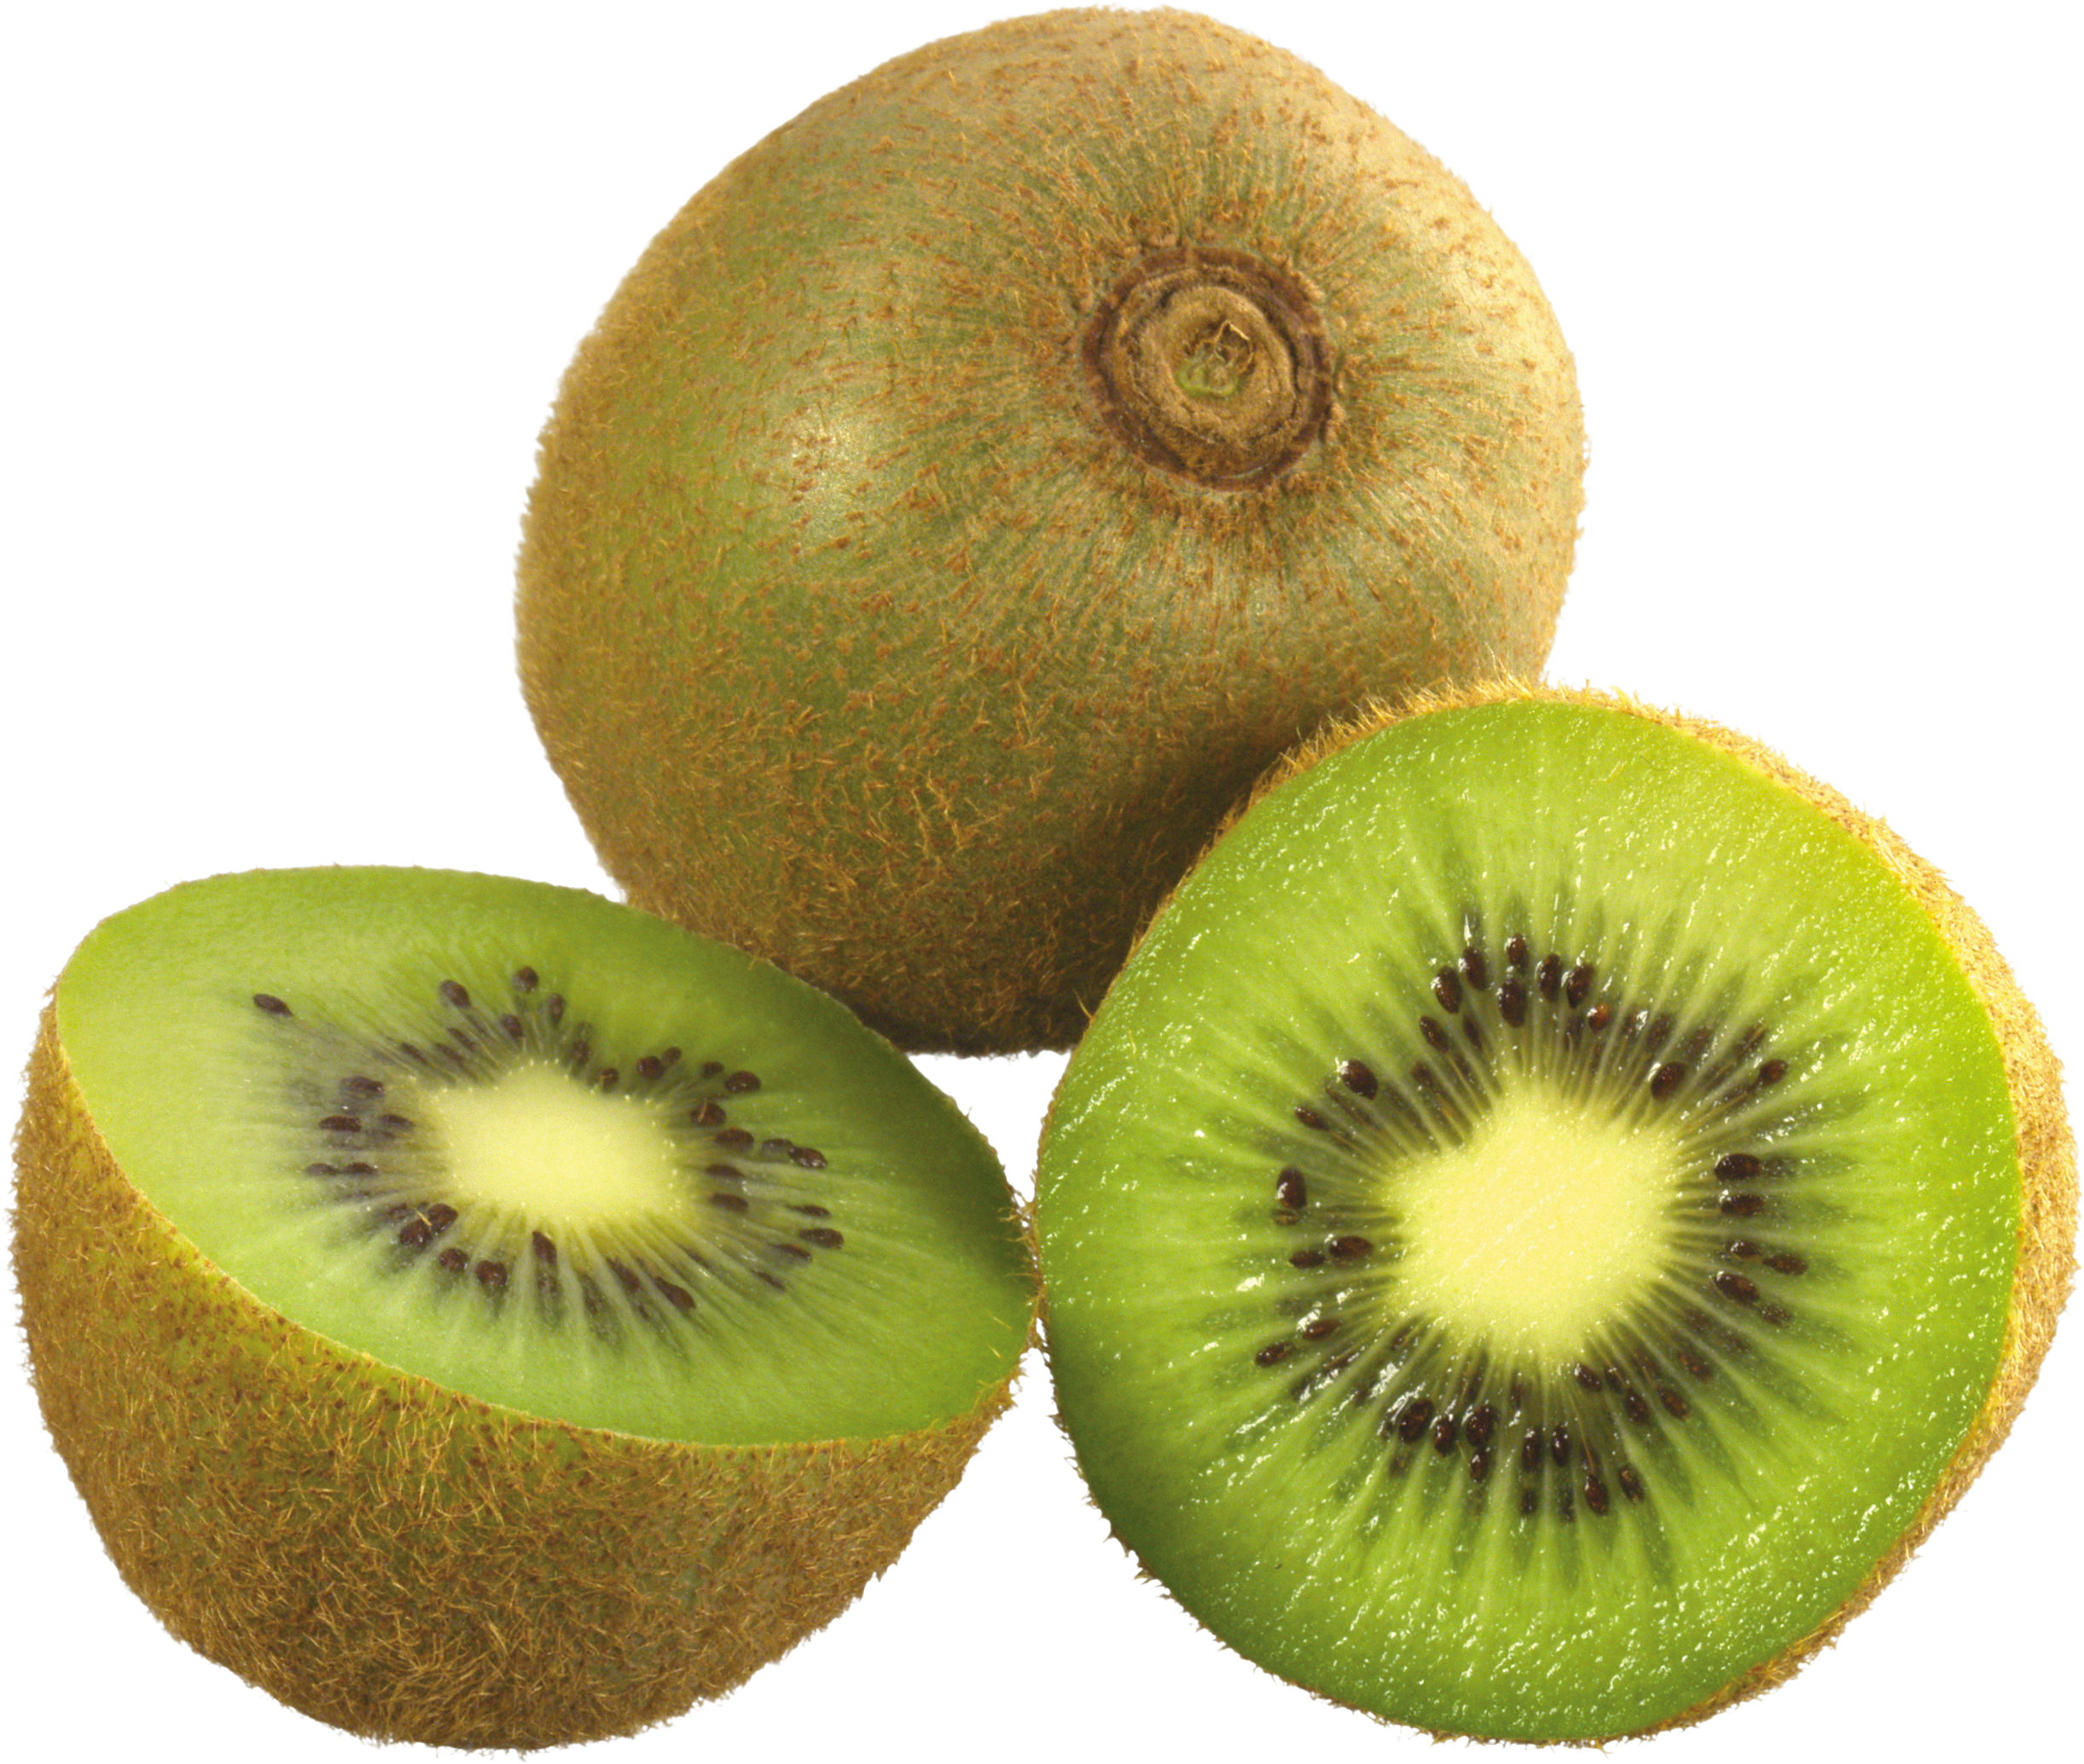 Kiwi transparent background free. Fruits clipart fresh fruit